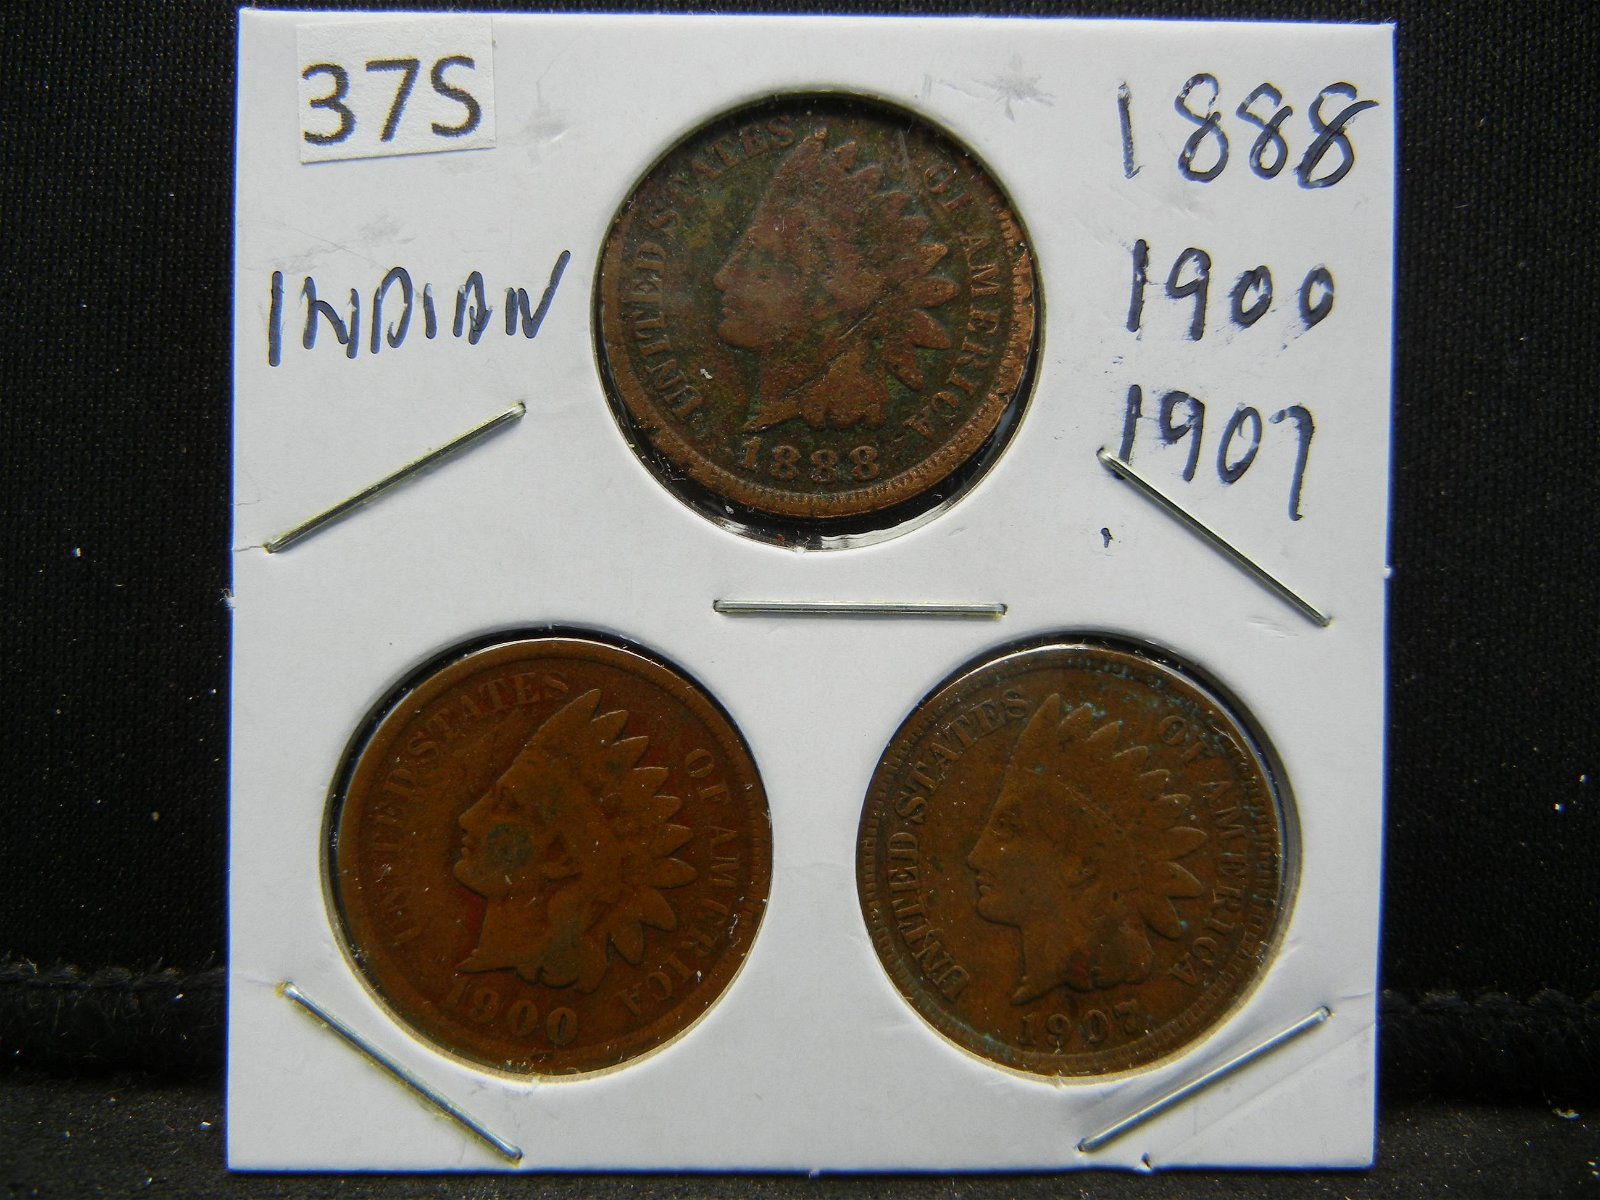 1888, 1900, 07 Indian Head Cents